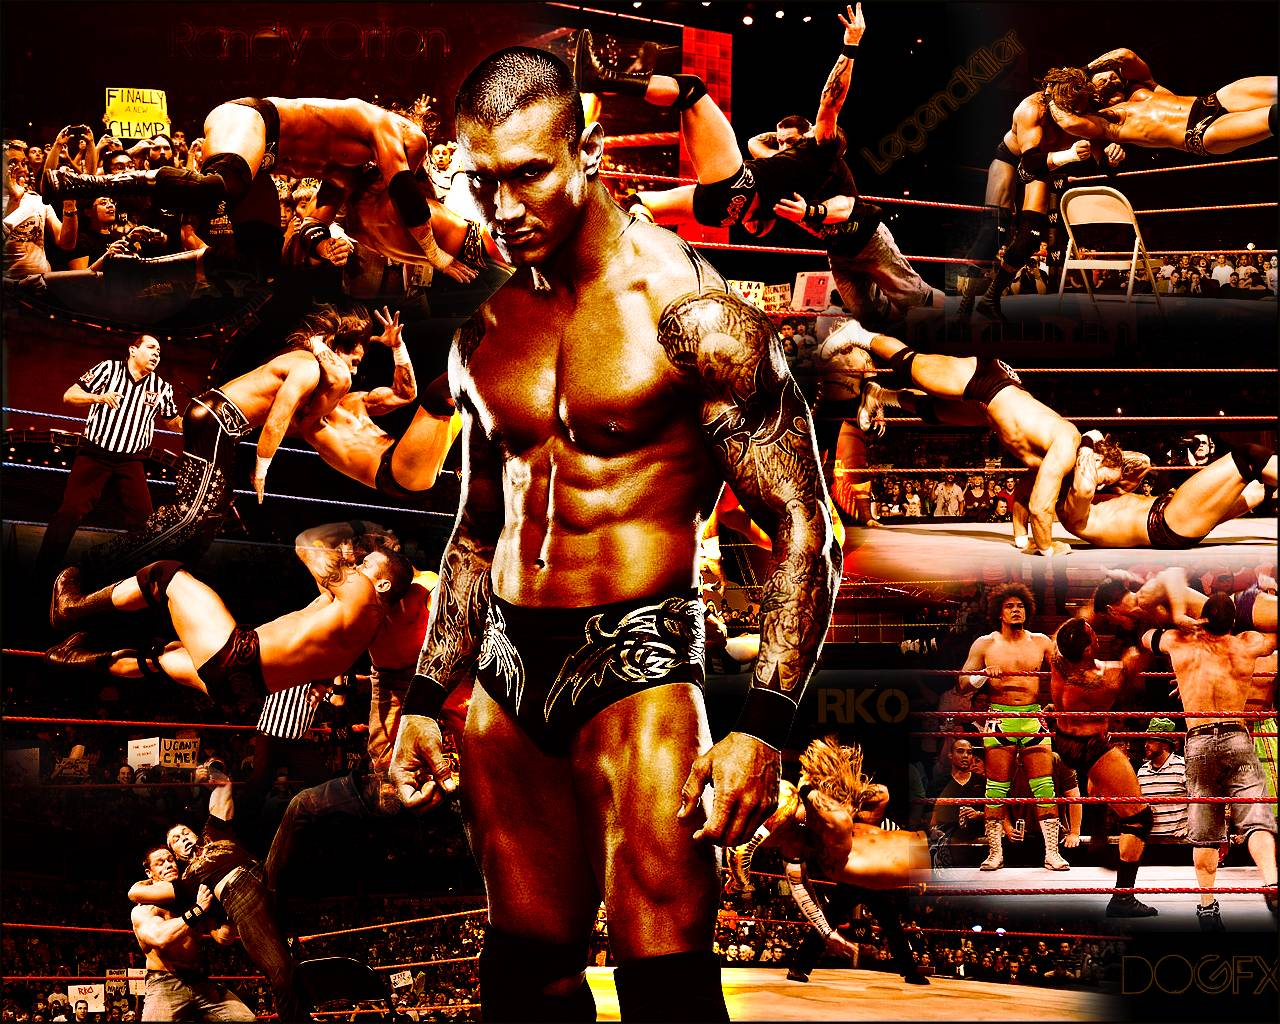 Randy Orton Hd Wallpapers Free Download - The Wallpaper